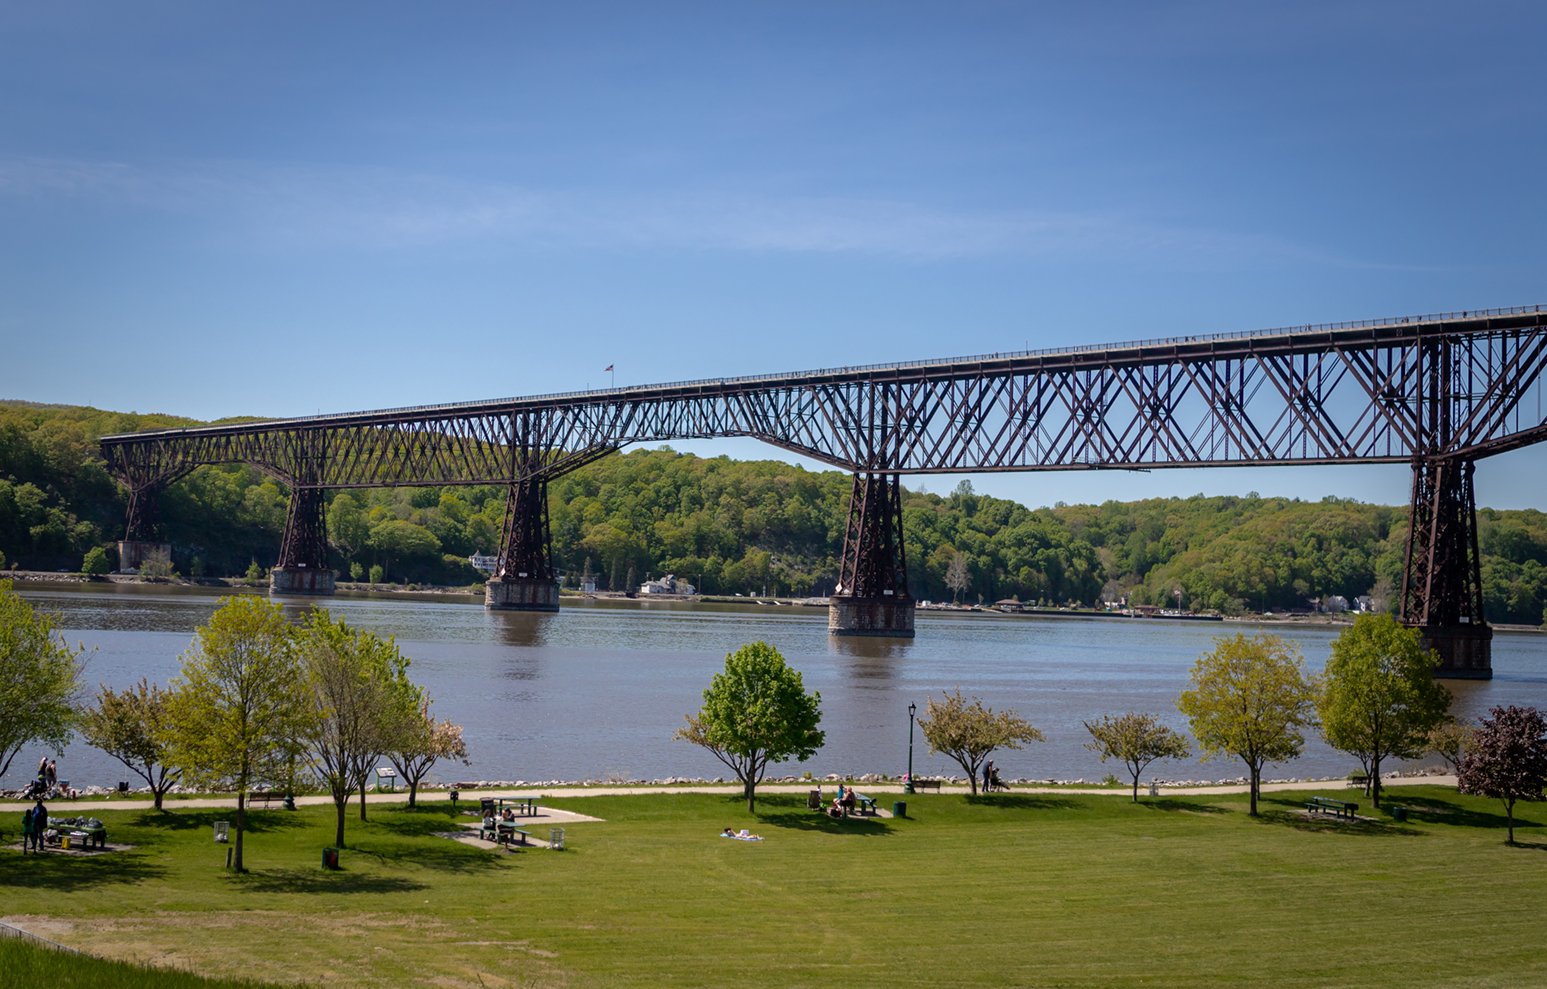 Walkway Over the Hudson in Poughkeepsie NY, one of our favorite things to do near our new home community at Sleight Farm at LaGrange